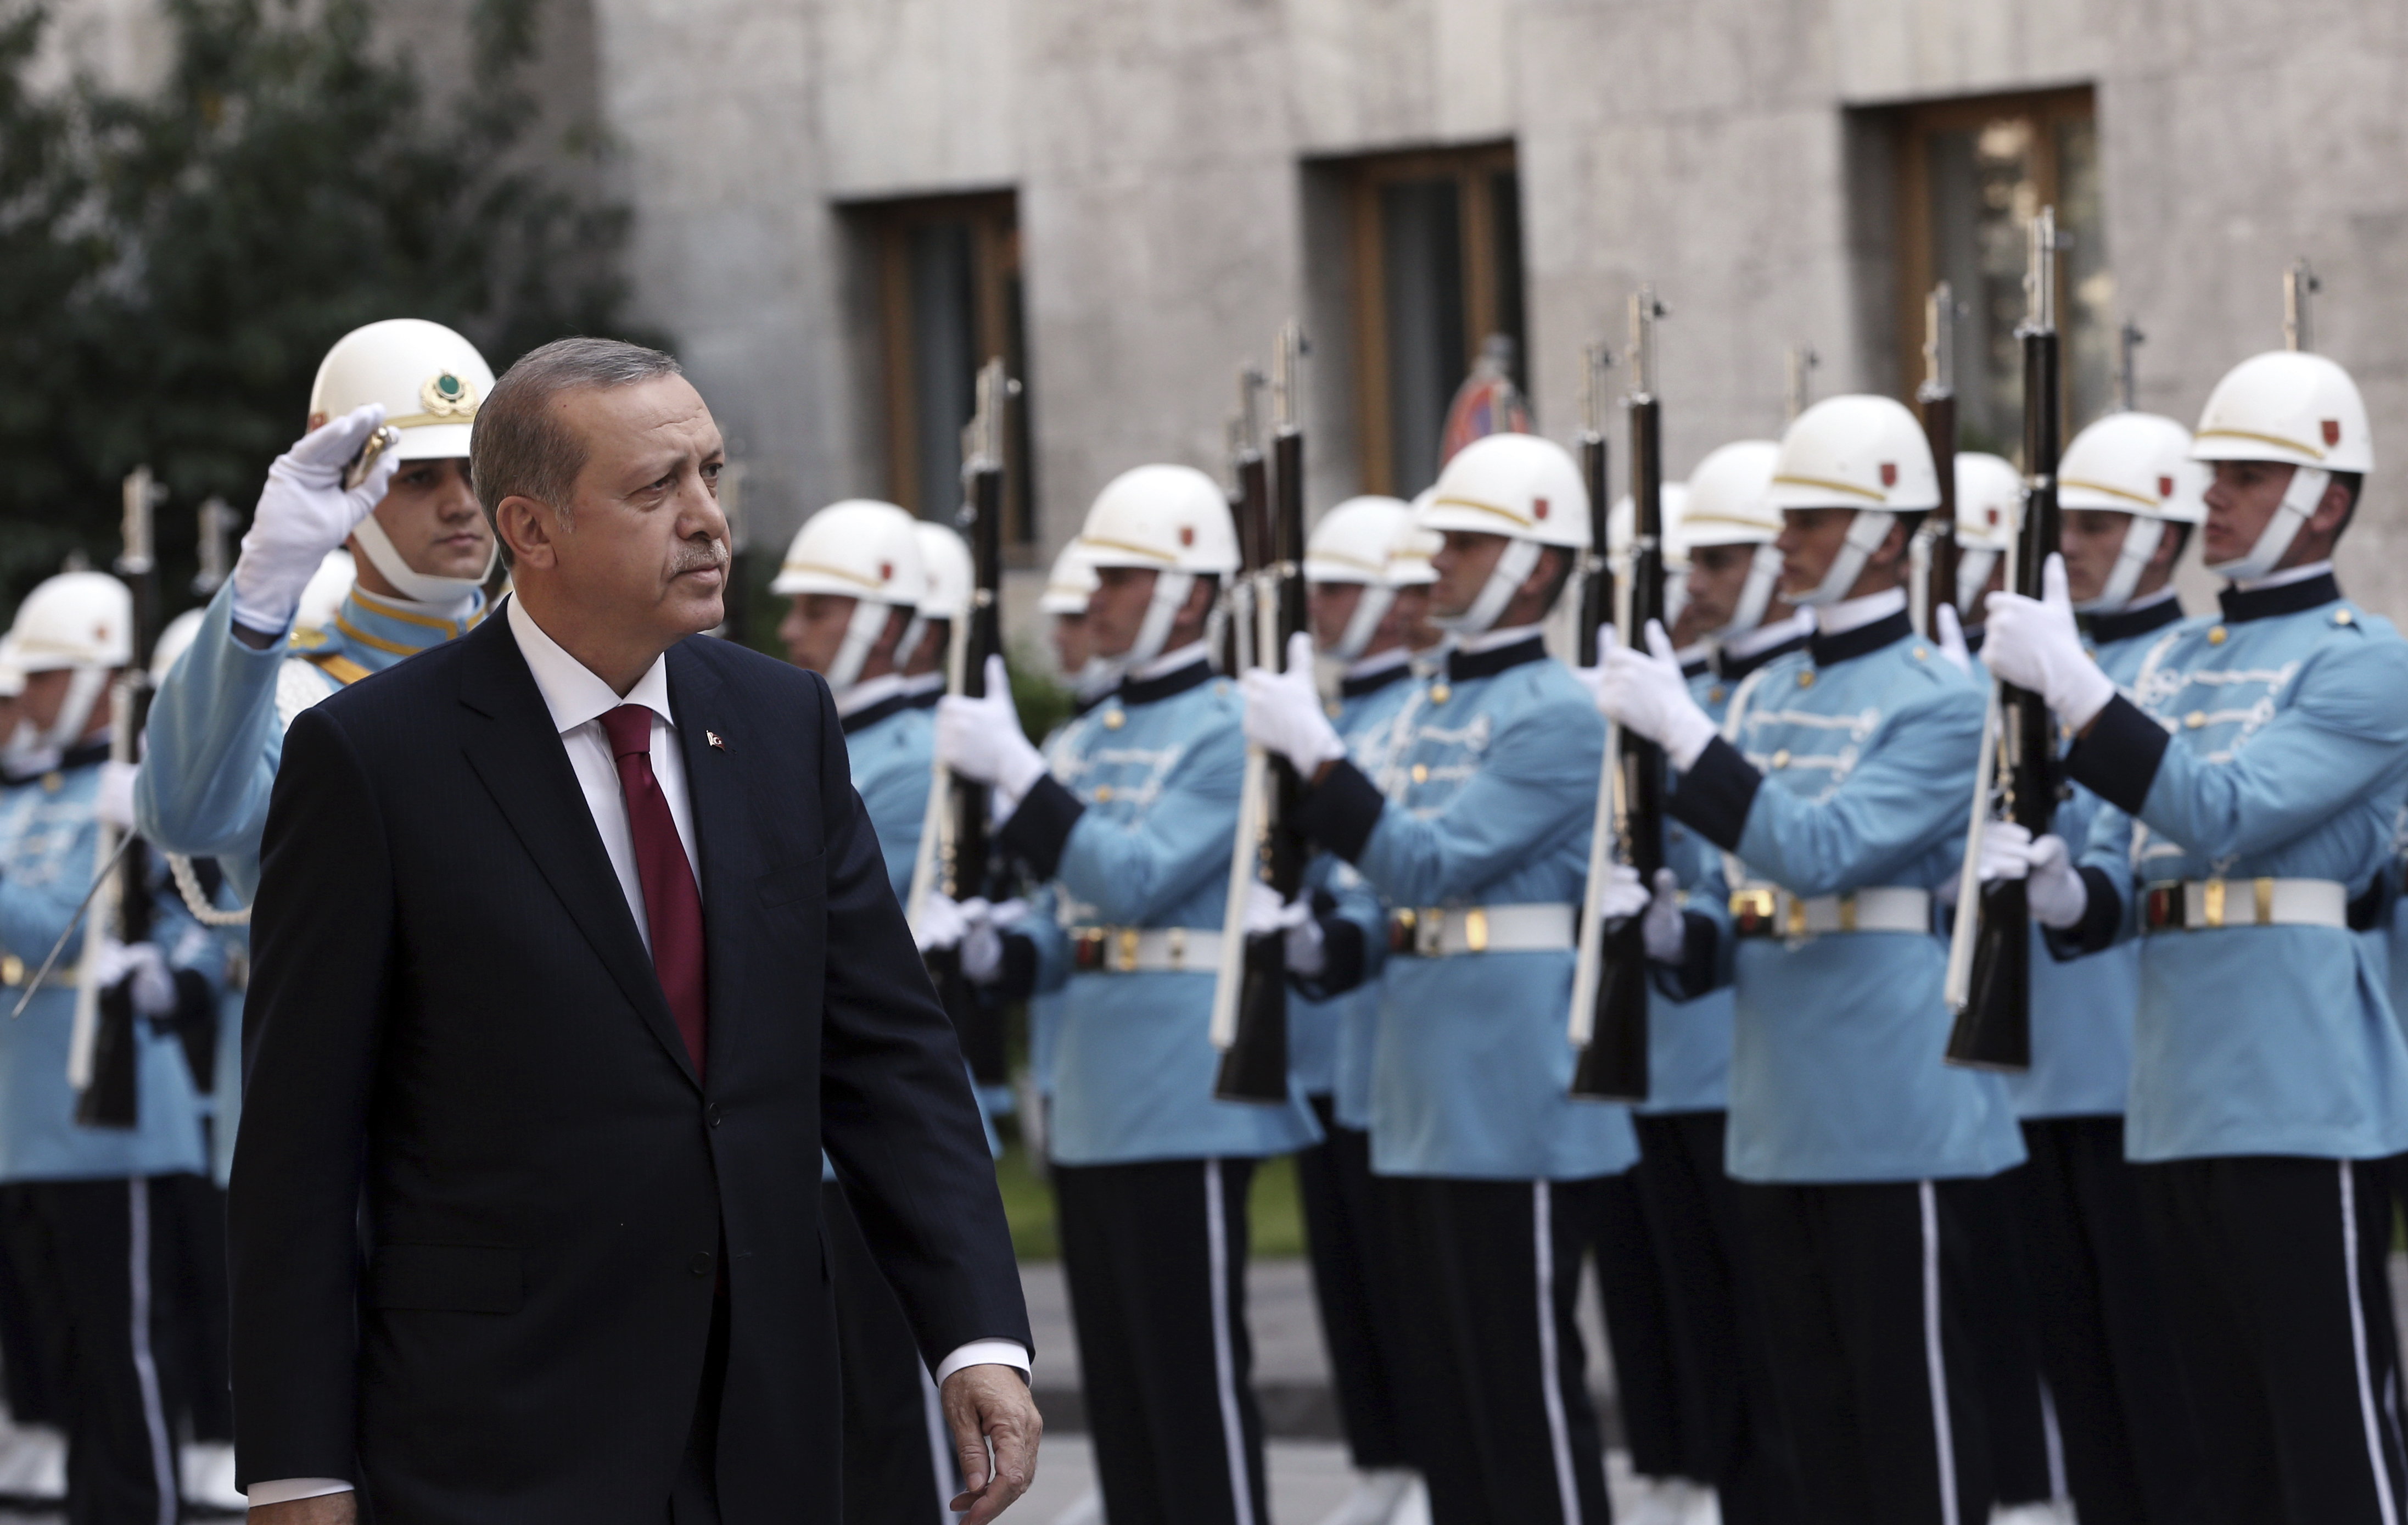 Turkey's President Recep Tayyip Erdogan inspects a military honour guard as he arrives to address the parliament in Ankara, Turkey, Saturday, Oct. 1, 2016.